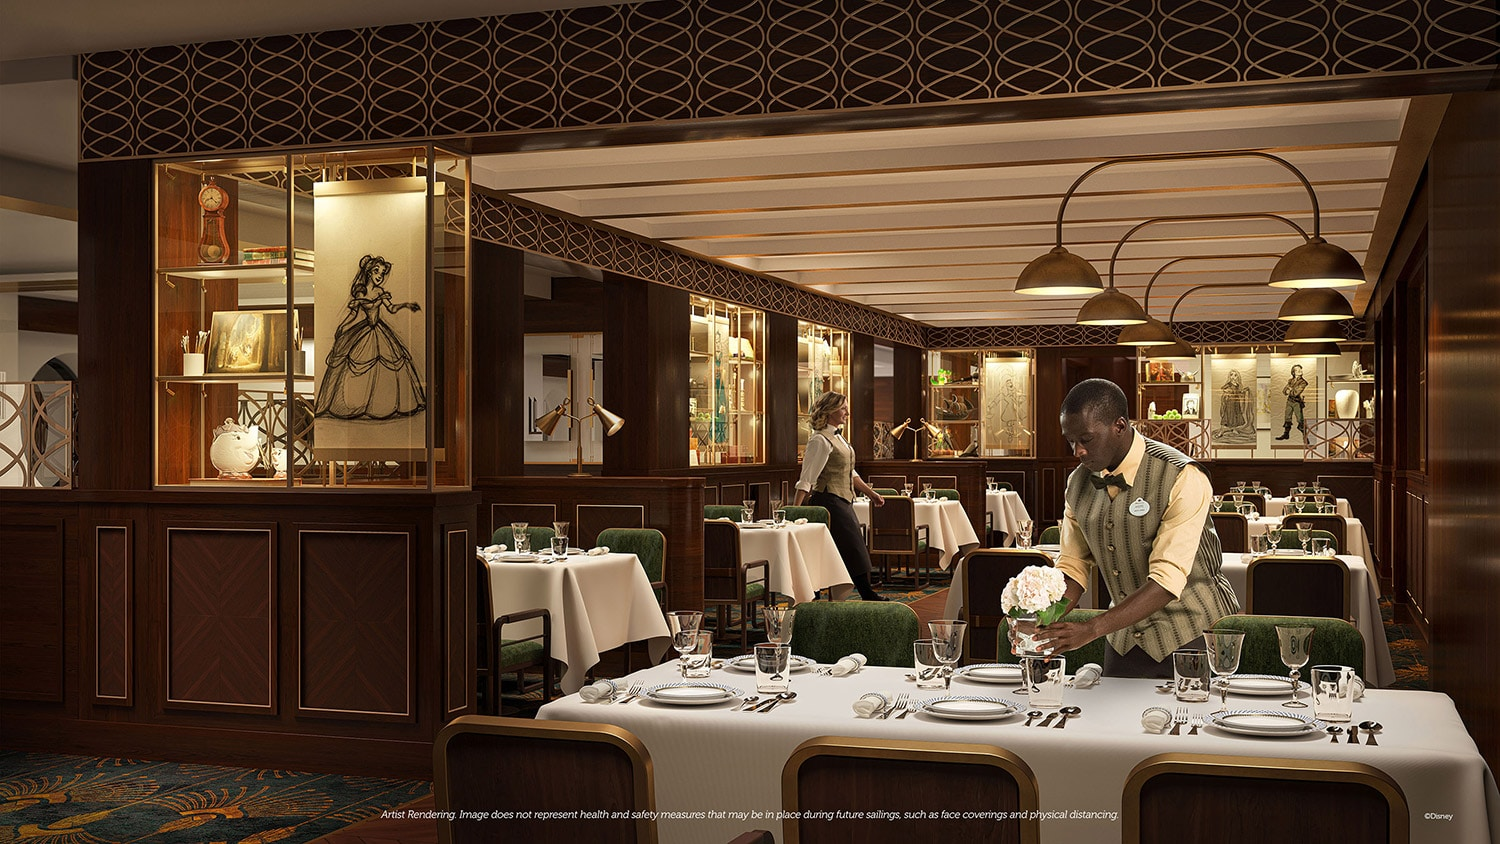 1923, a family dining experience aboard the Disney Wish